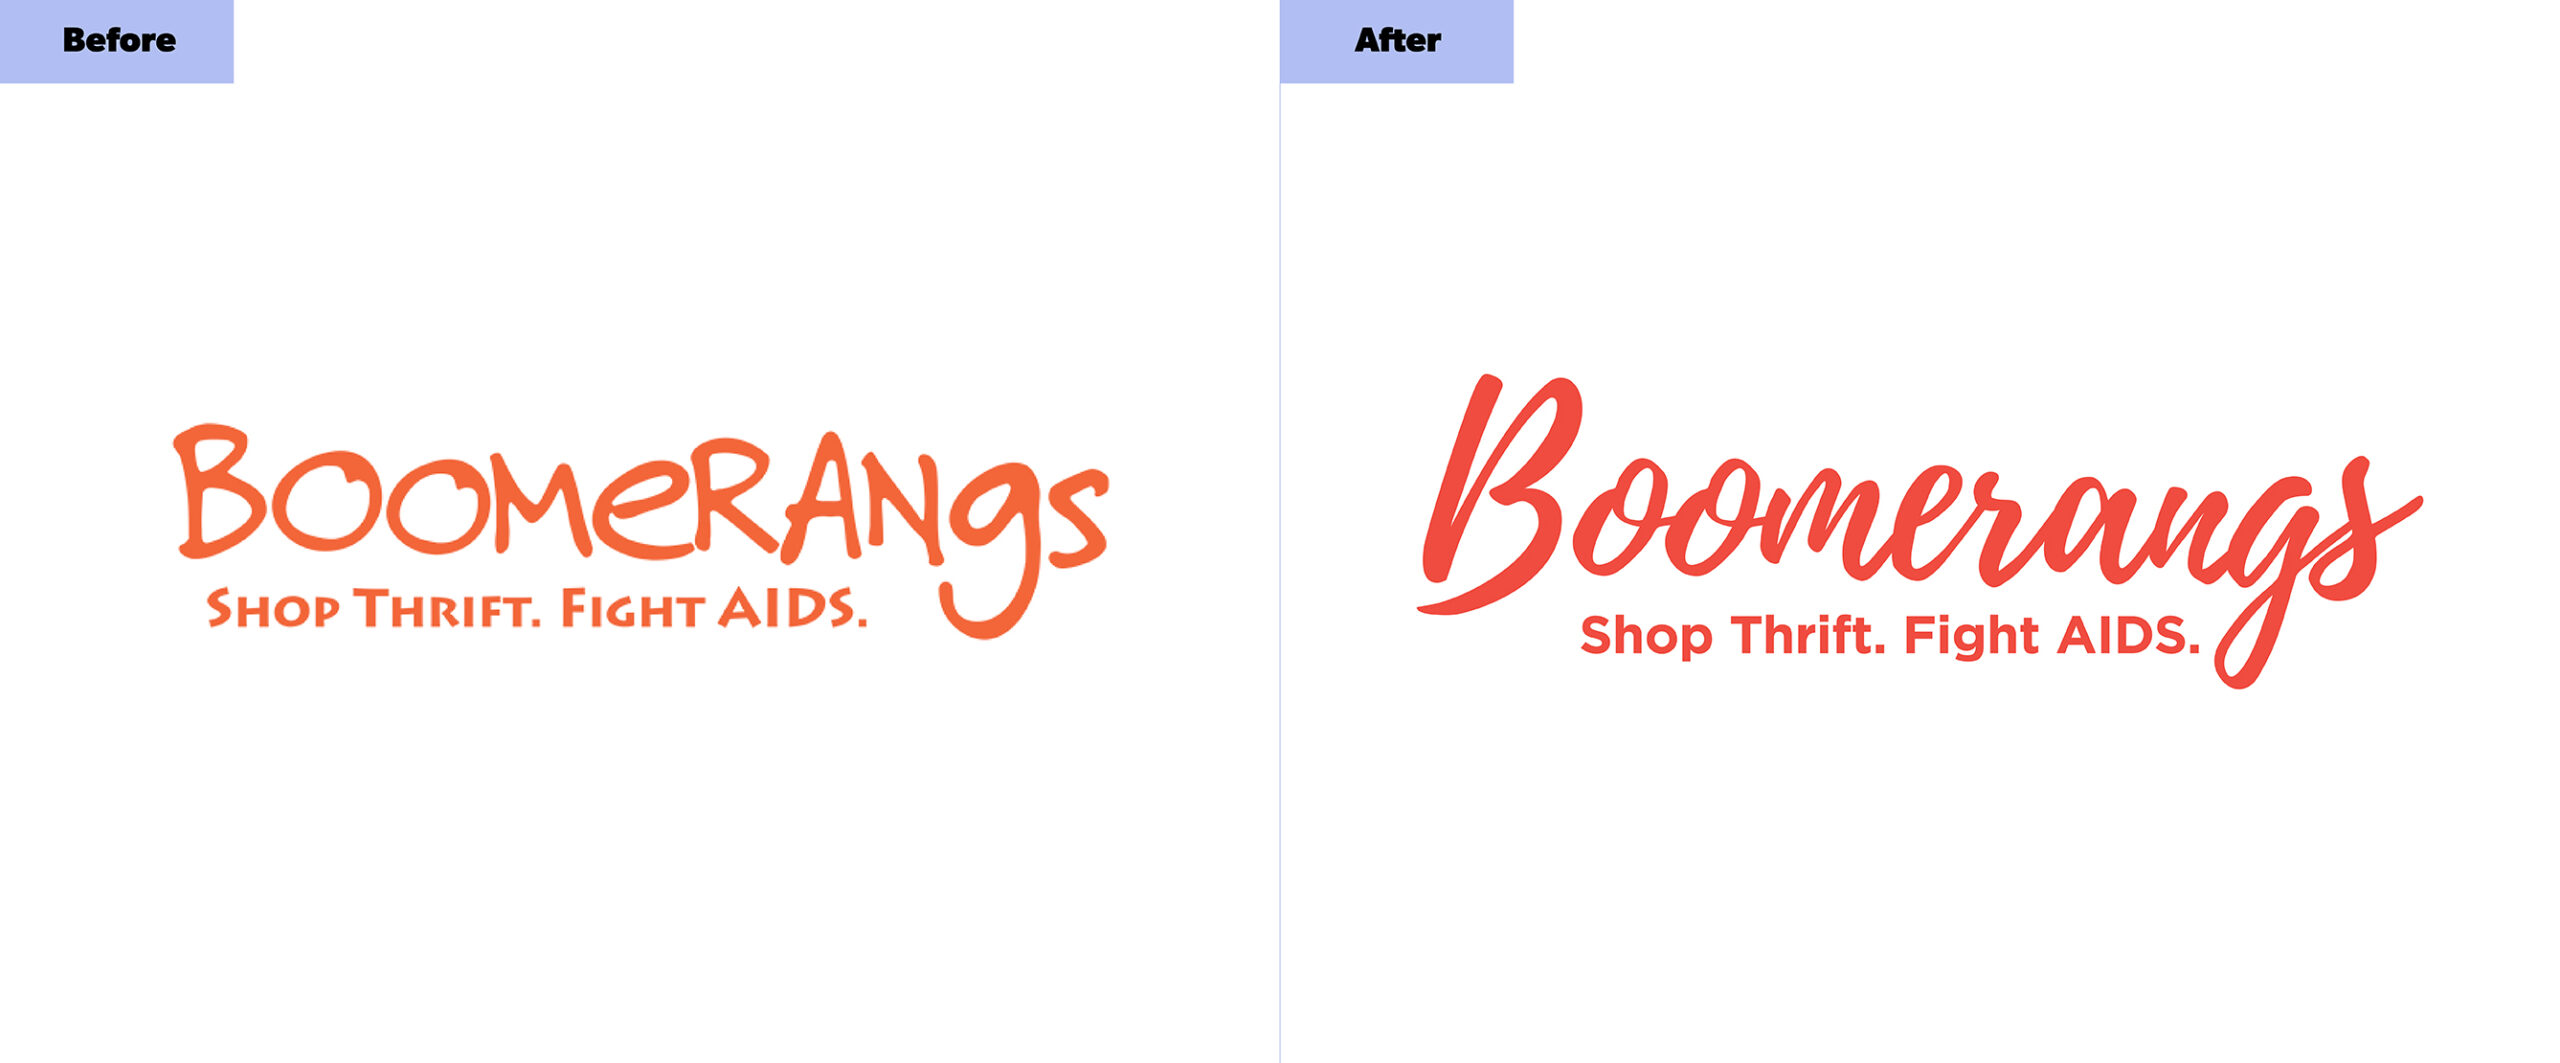 Boomerangs Logos Before and After